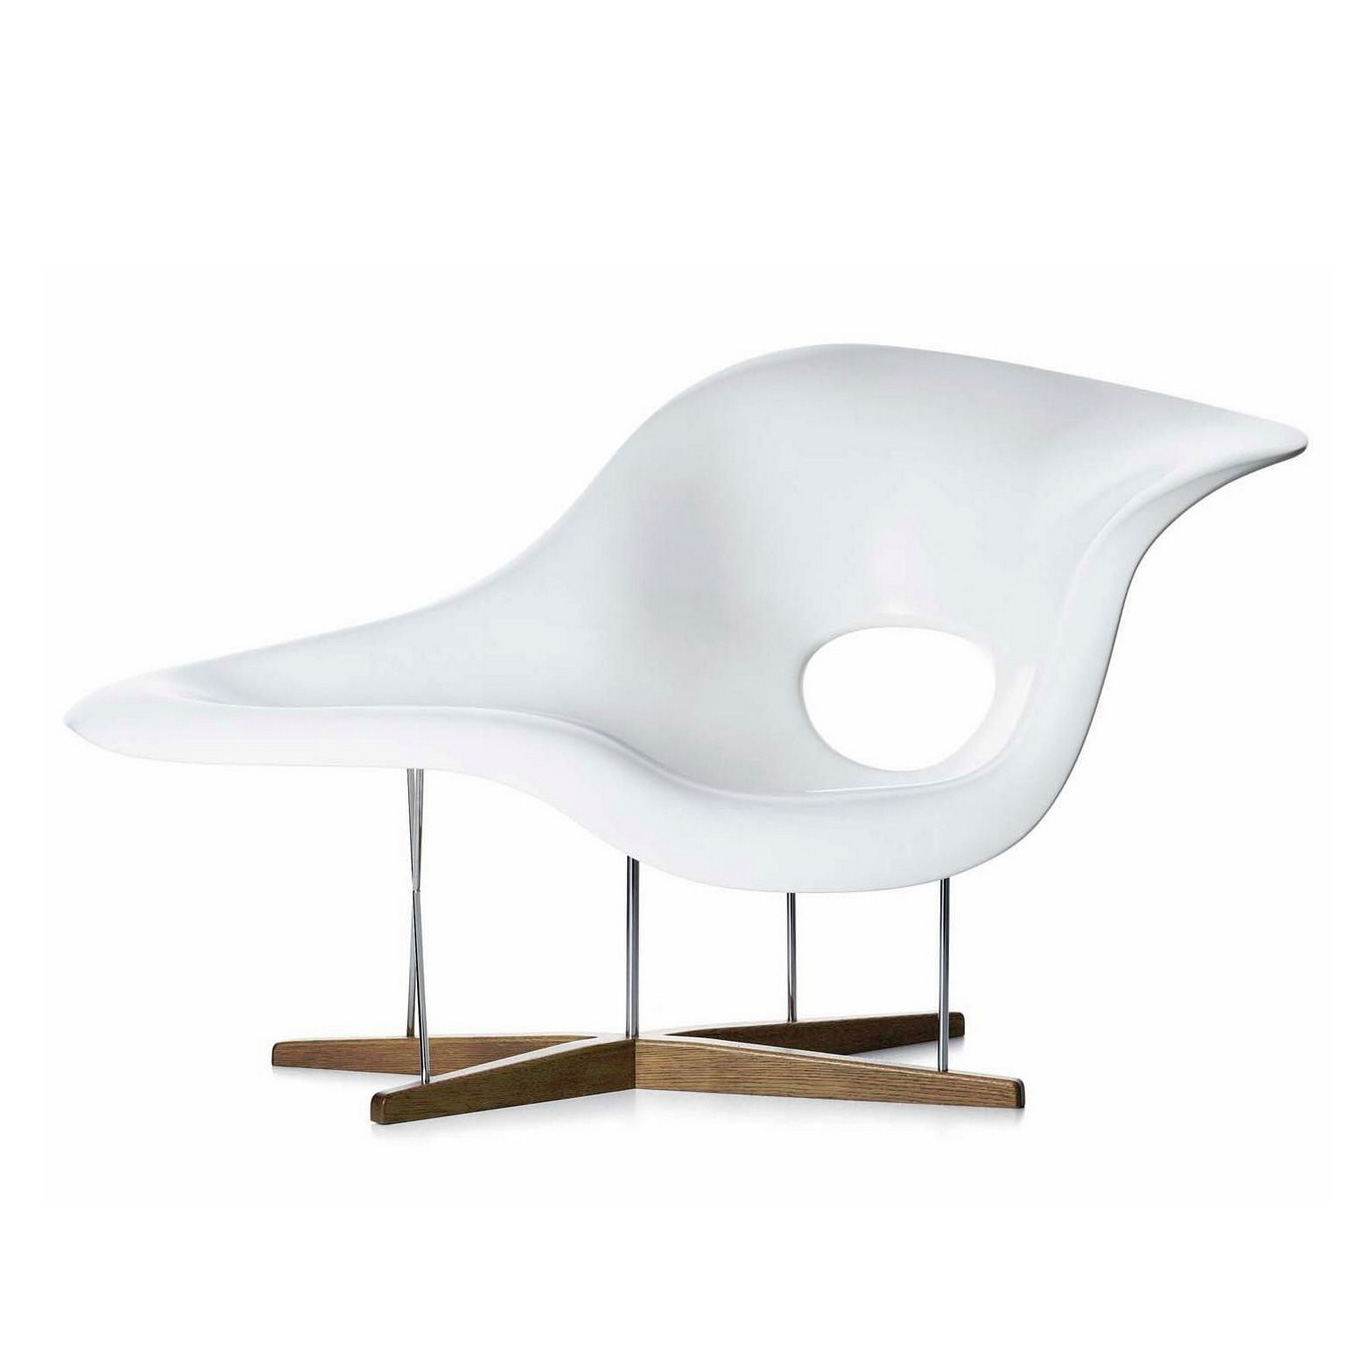 Charles Eames Chaise Longue » Bauhaus Chaiselongue